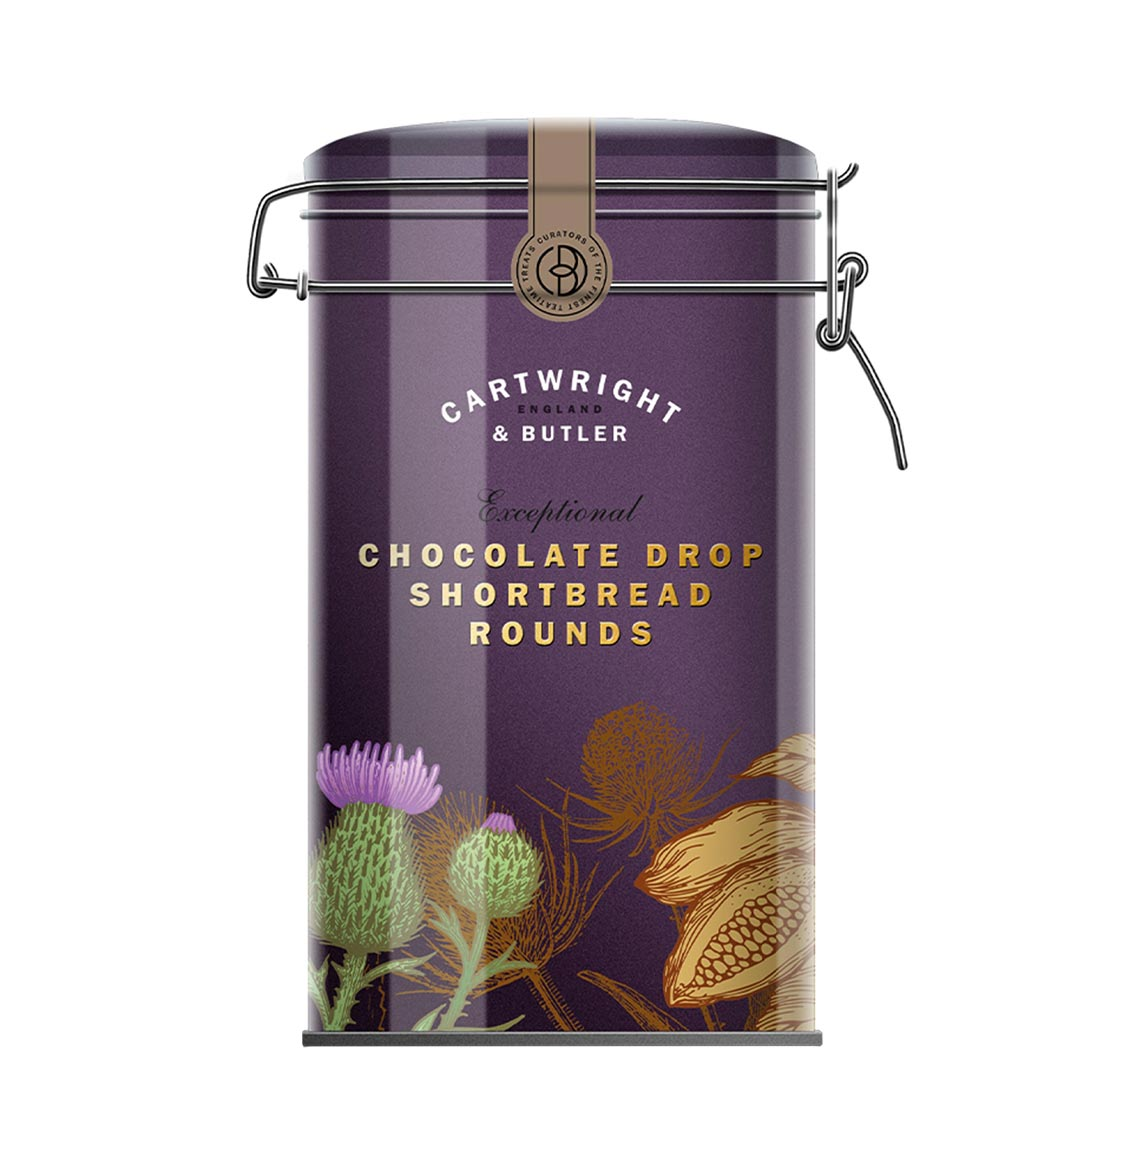 Cartwright_And_Butler_Chocolate_Drop_Shortbread_Rounds_in_Tin_The_Project_Garments_A